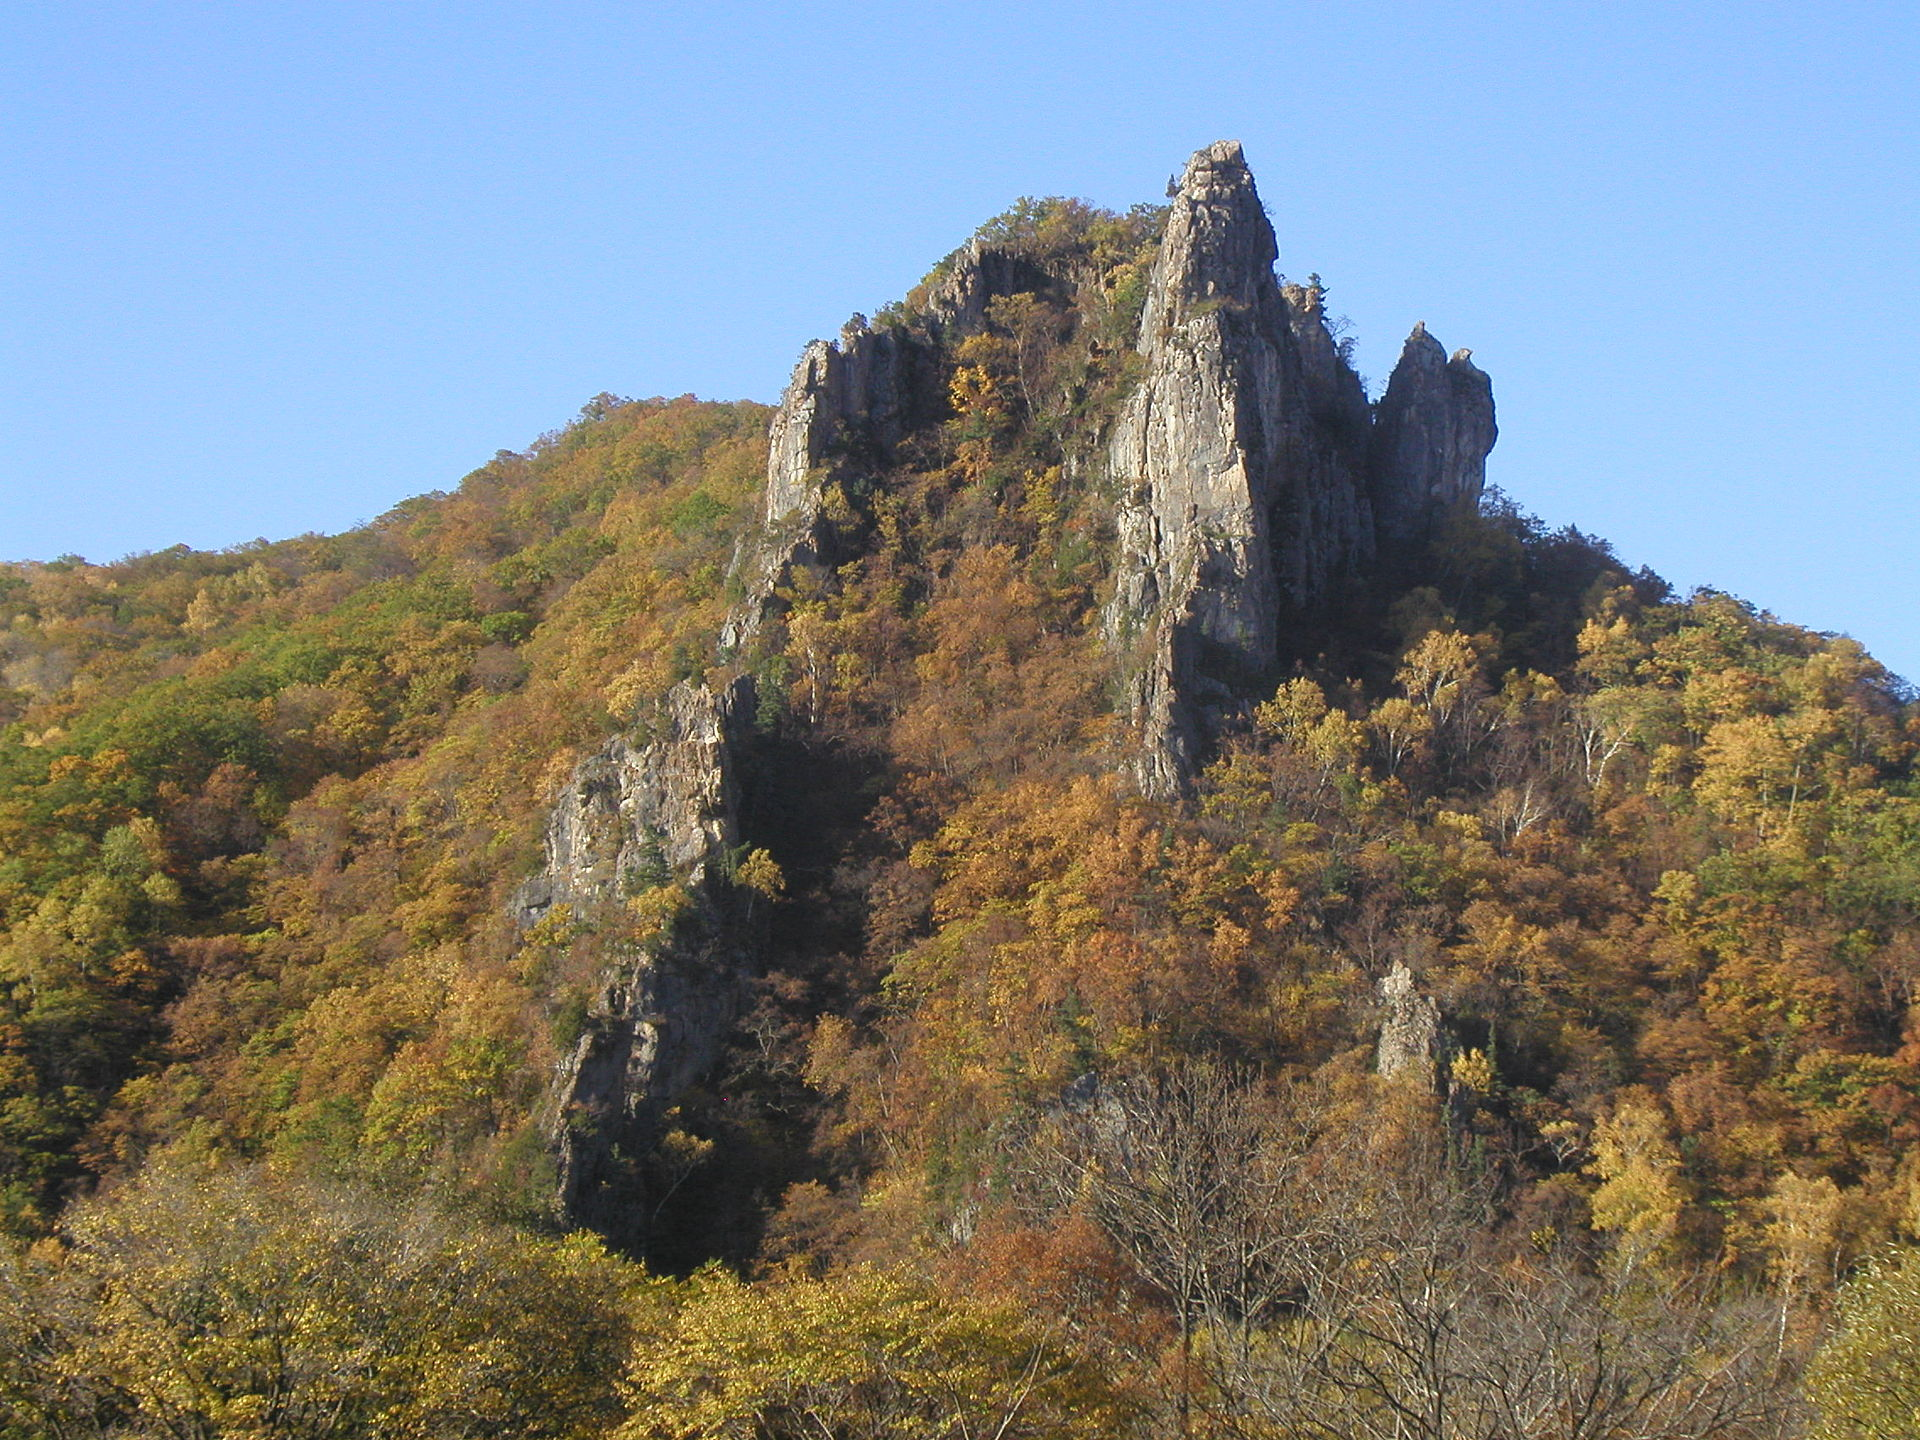 Rock_in_Sikhote-Alin.jpg